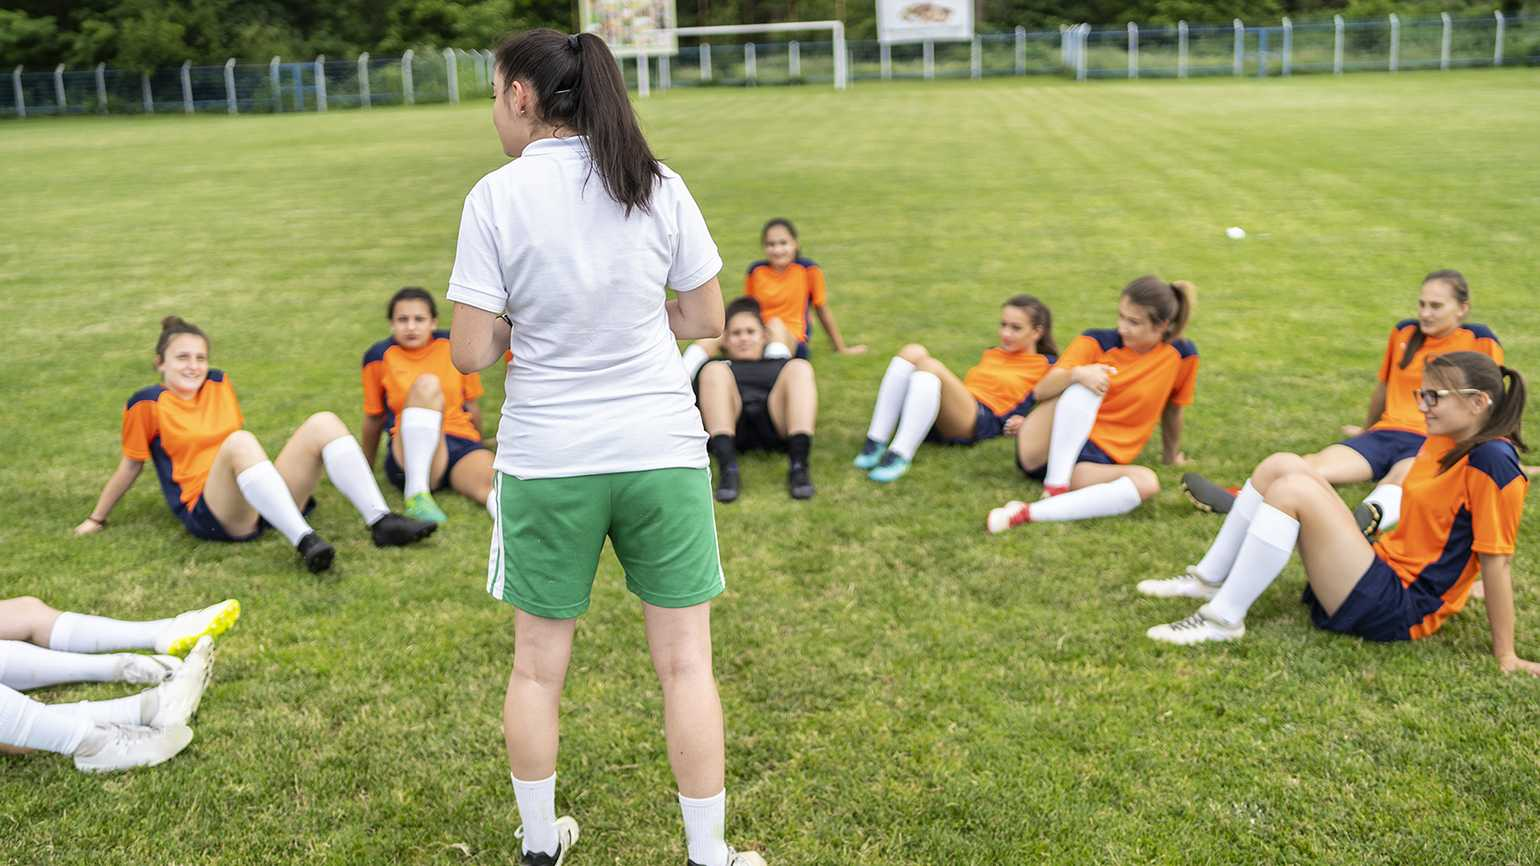 A coach addresses the players on her soccer team